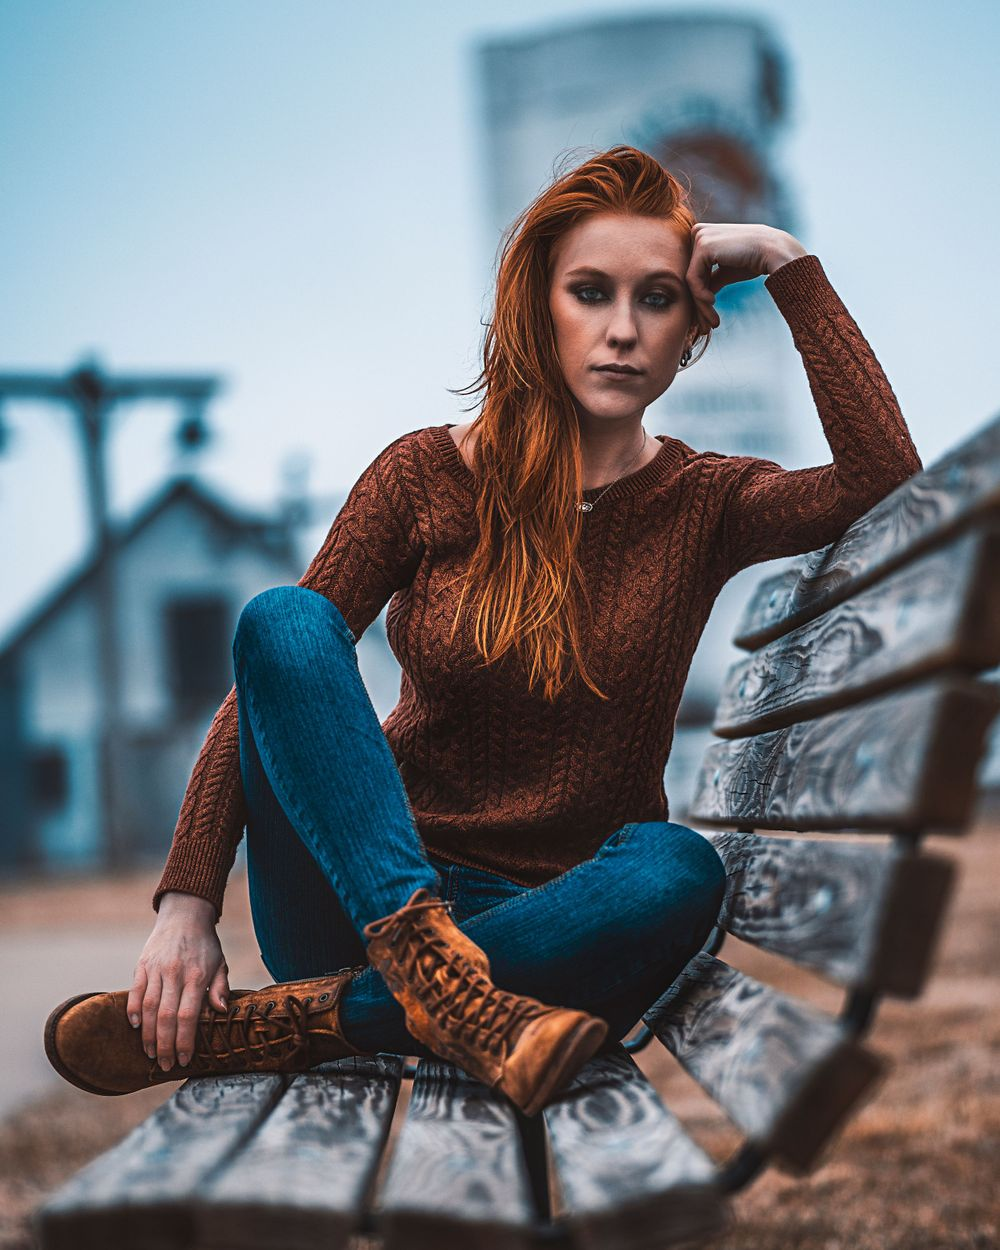 Fashion Portrait of girl in sweater jeans and boots sitting on bench for model portfolio